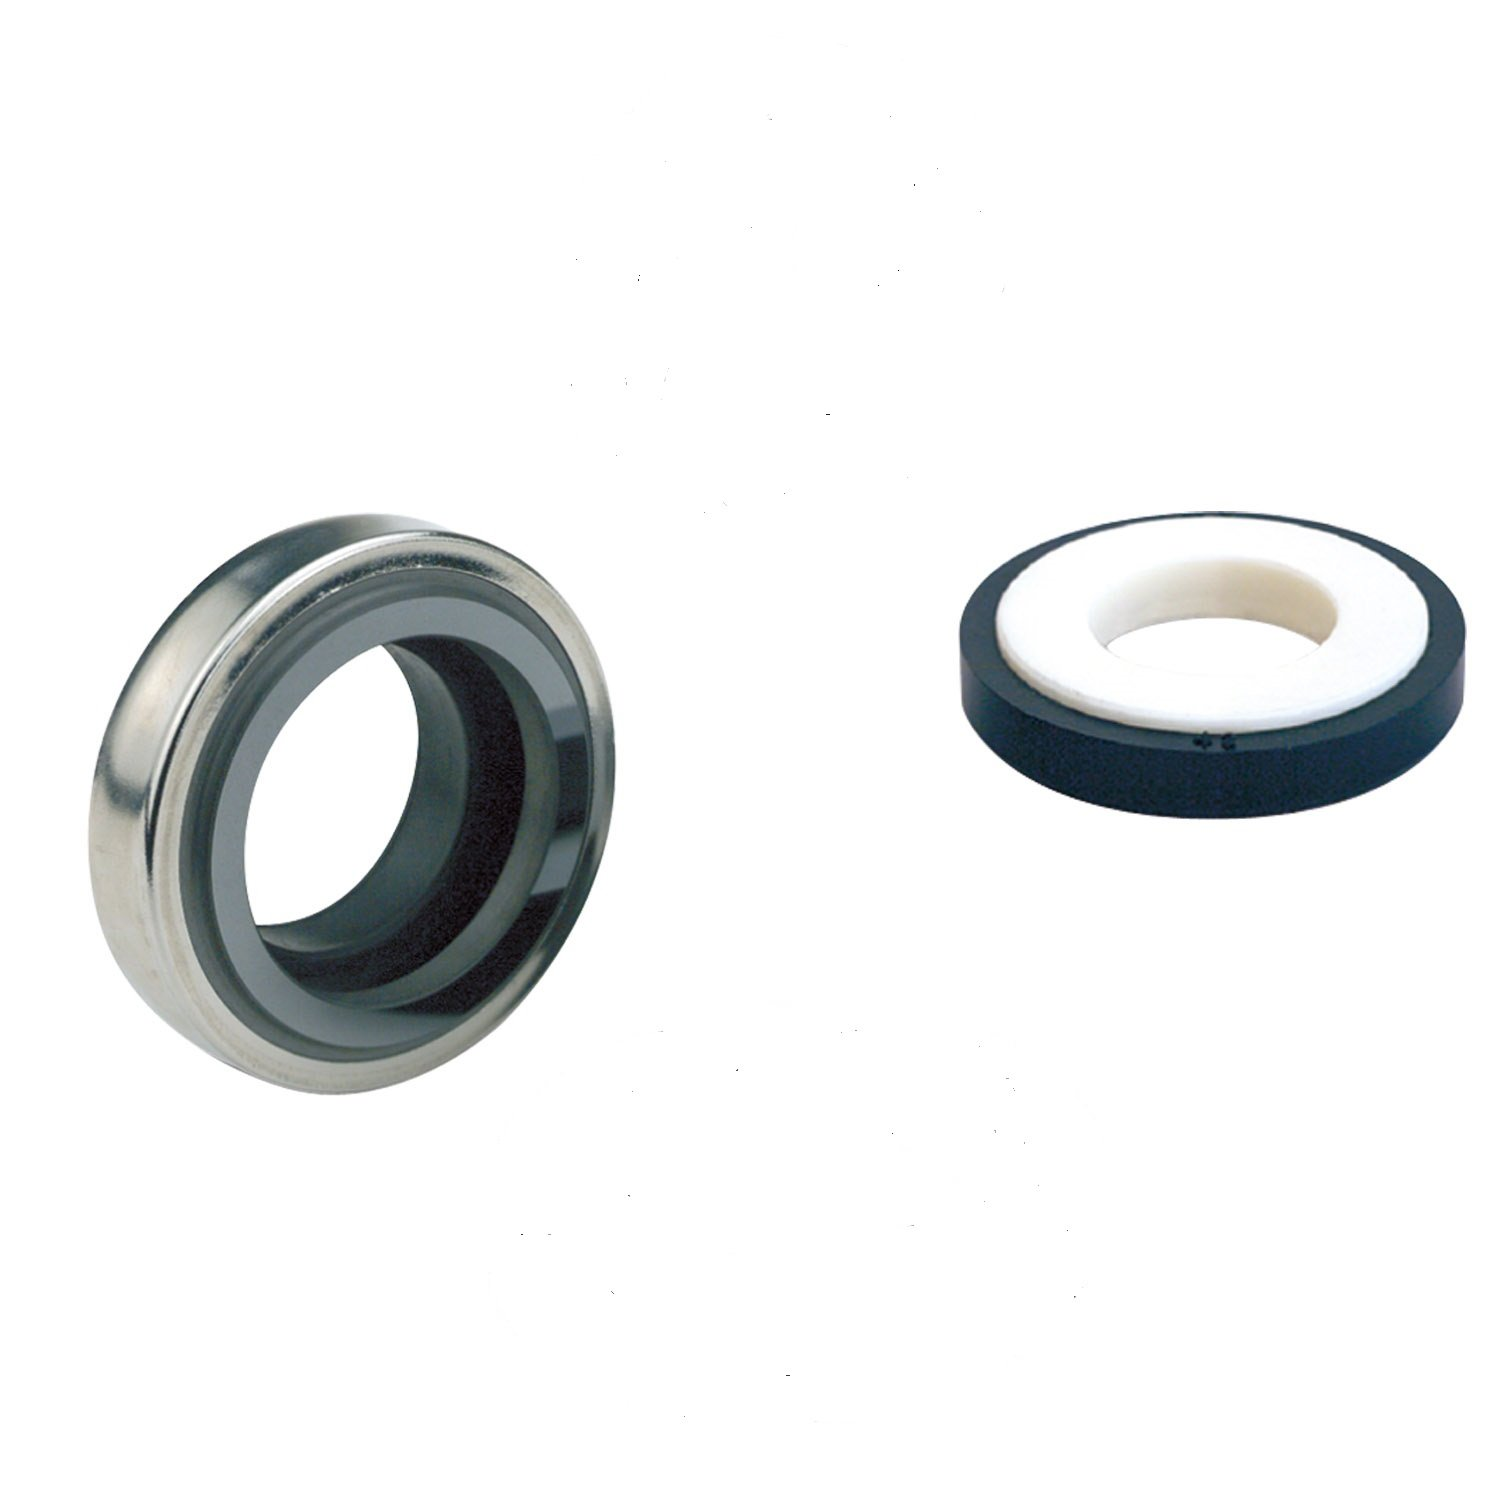 21-062-22 FLOWSERVE Seal,Pump Shaft,5//8 In